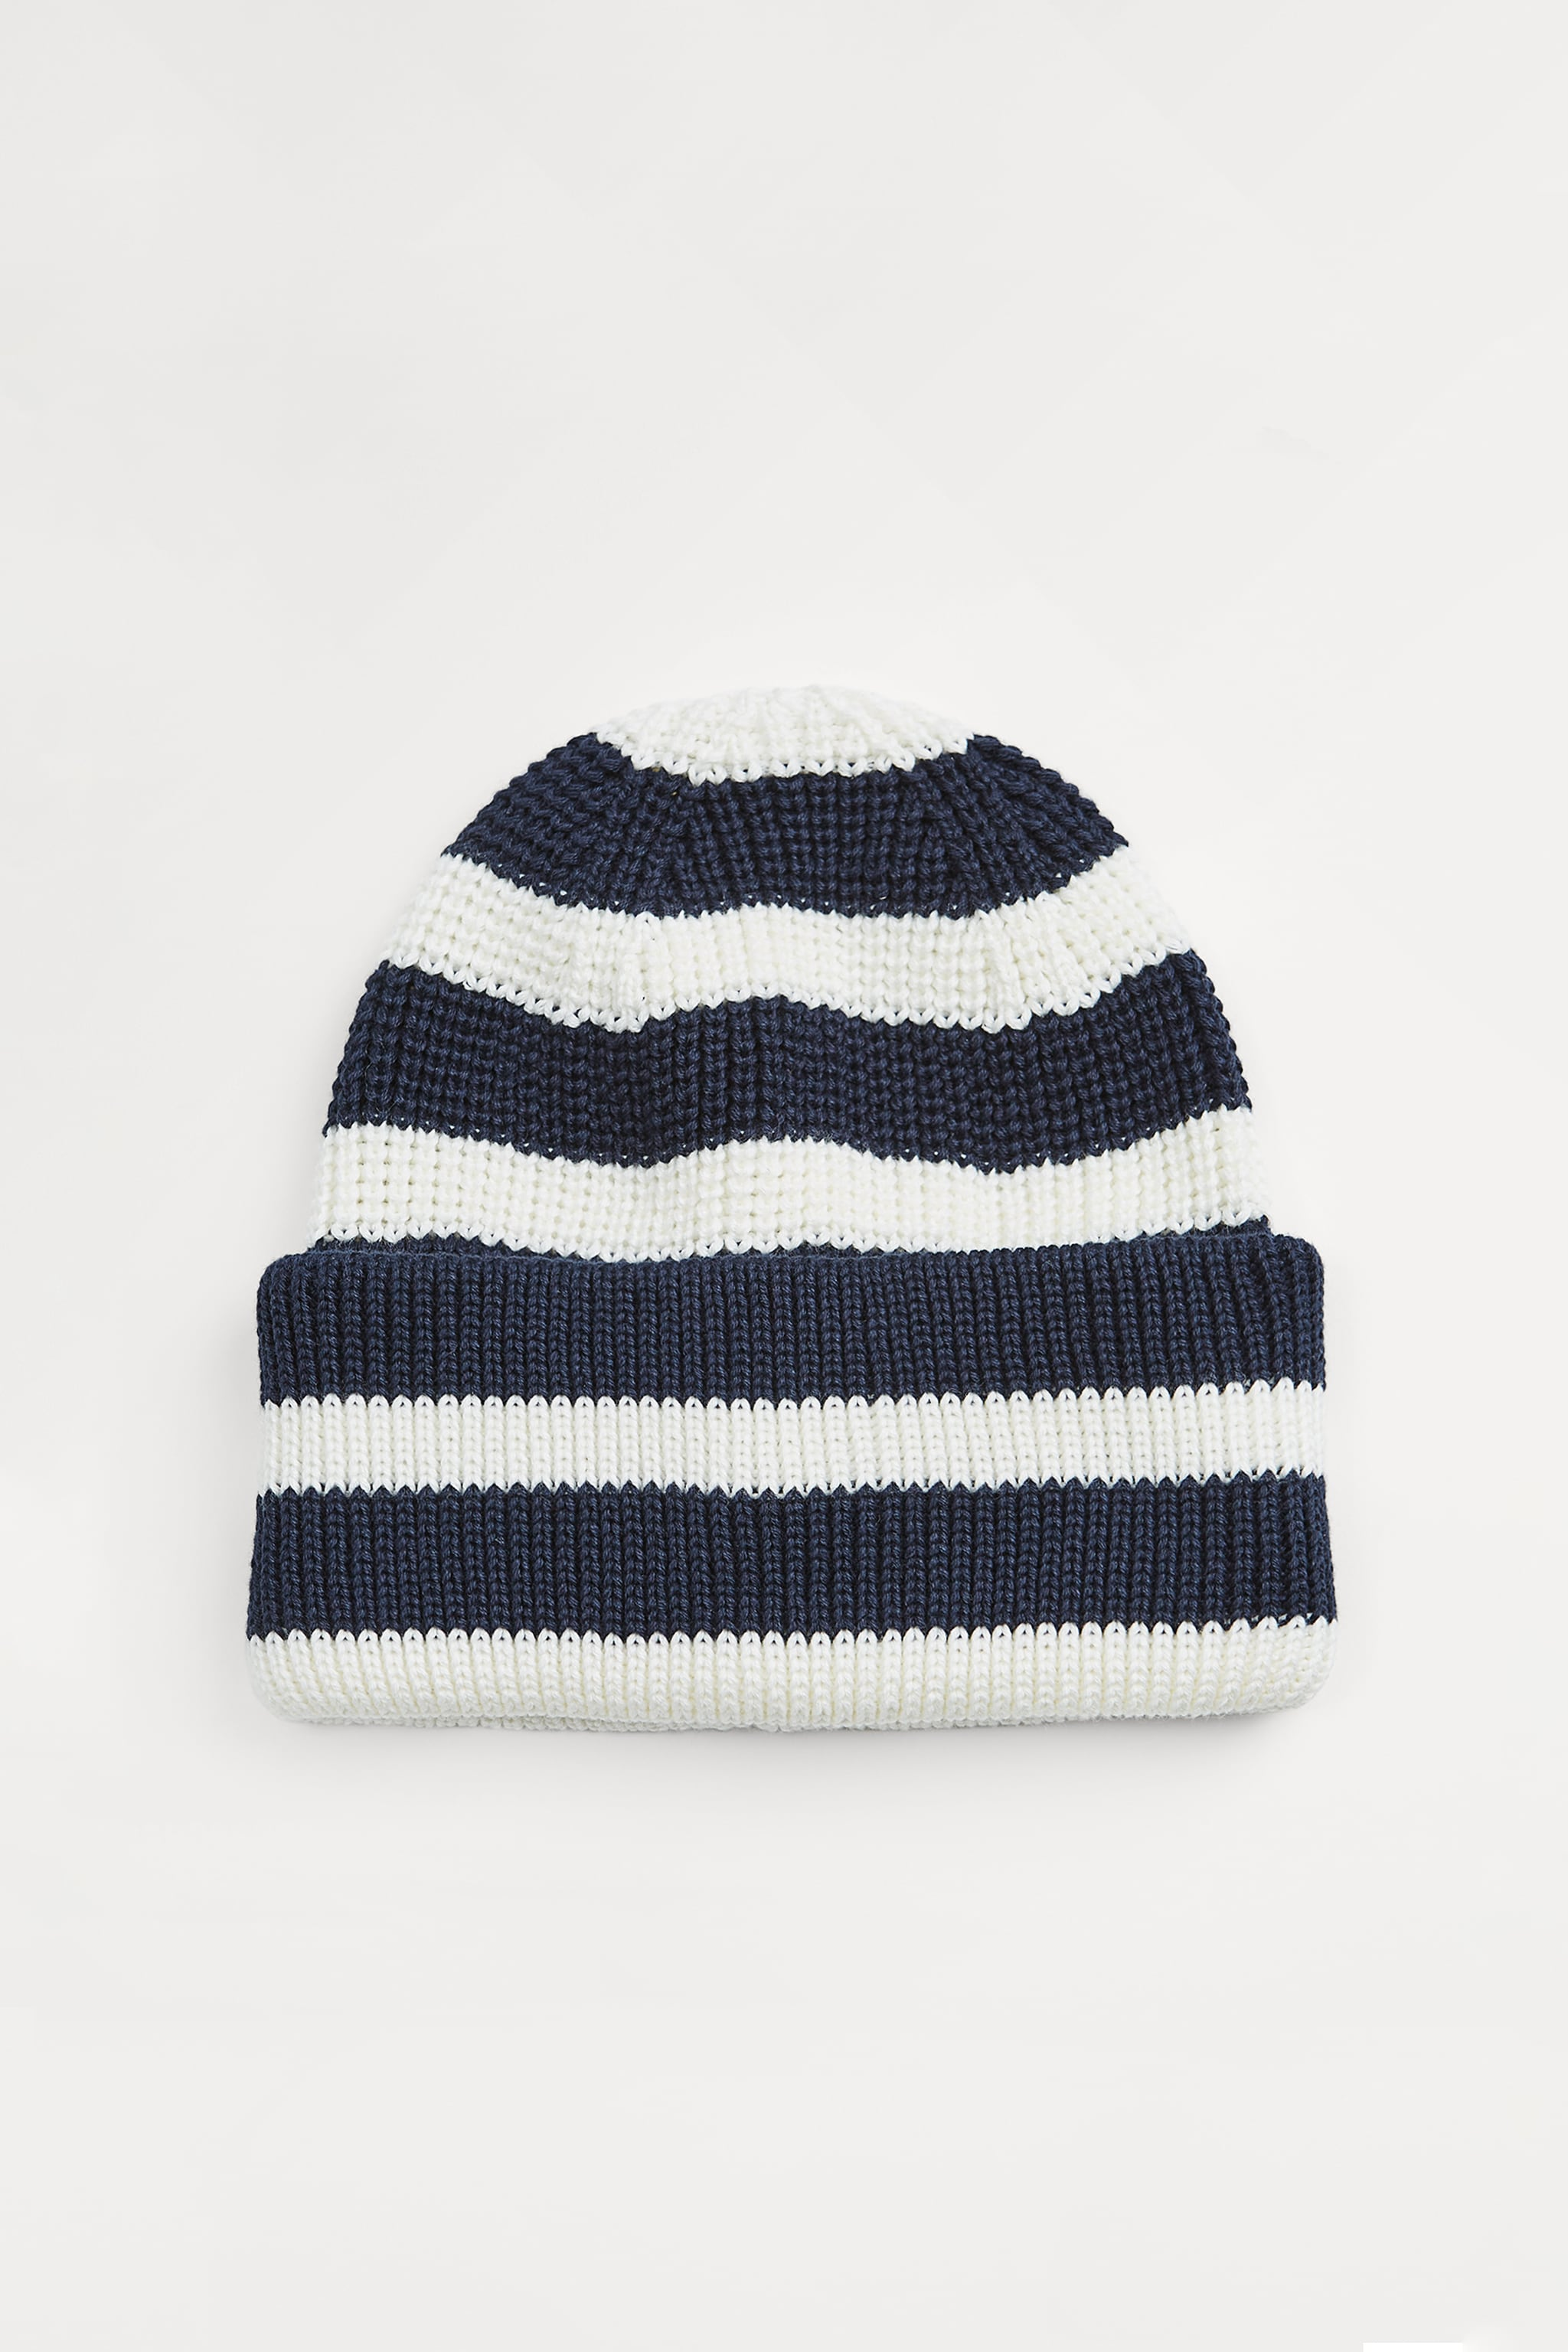 Zara STRIPED KNIT HAT